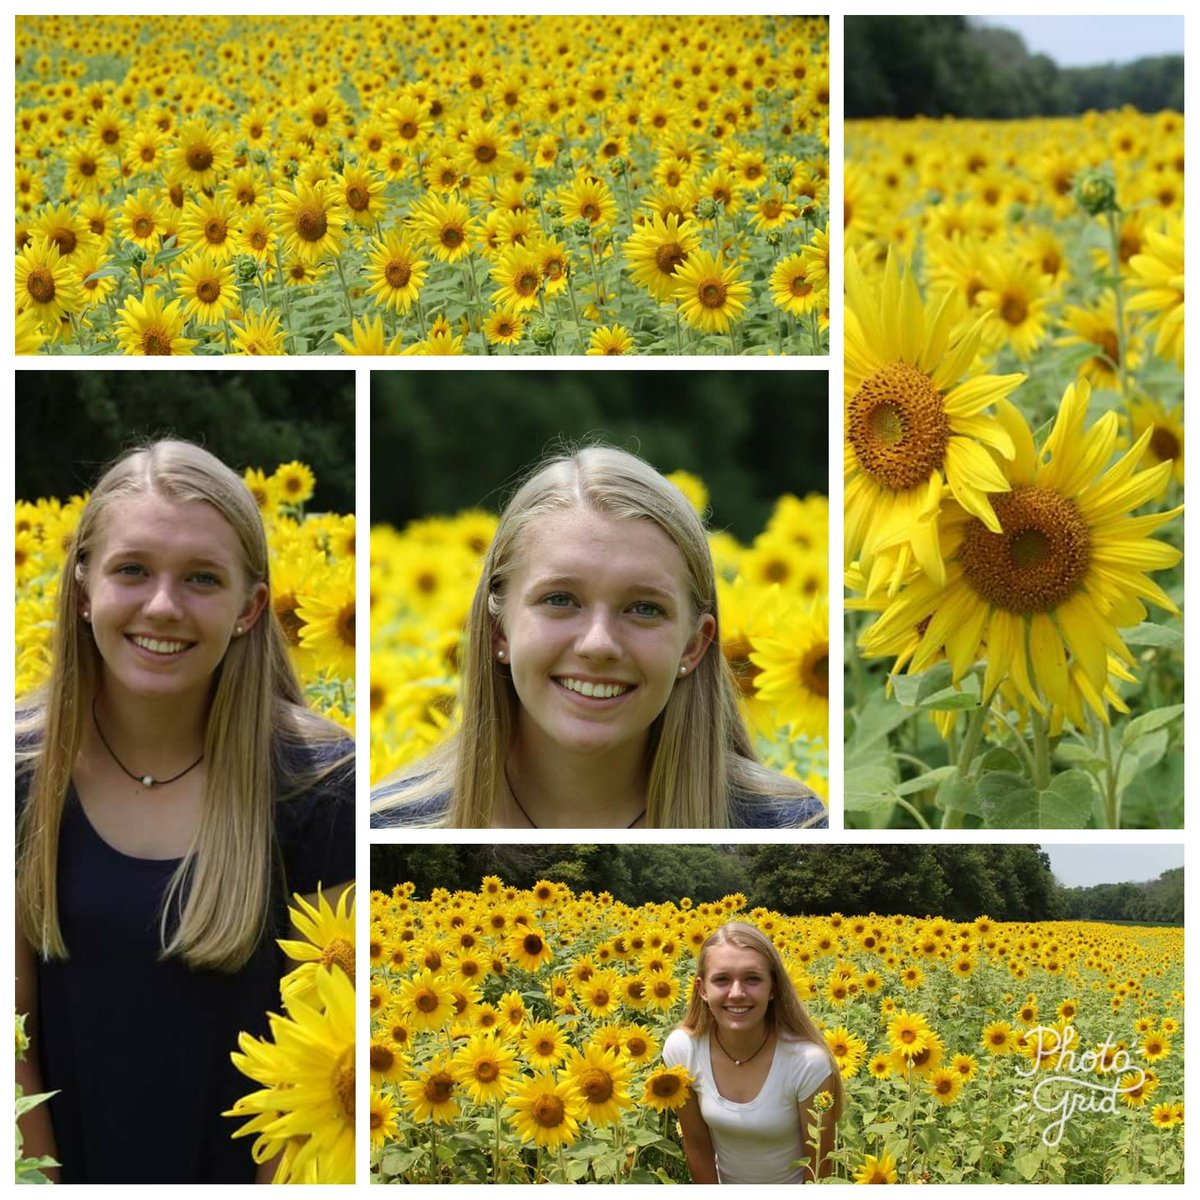 My beautiful girl at McKee-Beshers yesterday @MarylandDNR @amy_nicholson7 #sunflowers #SeniorPictures<br>http://pic.twitter.com/qMsKRQAwxB